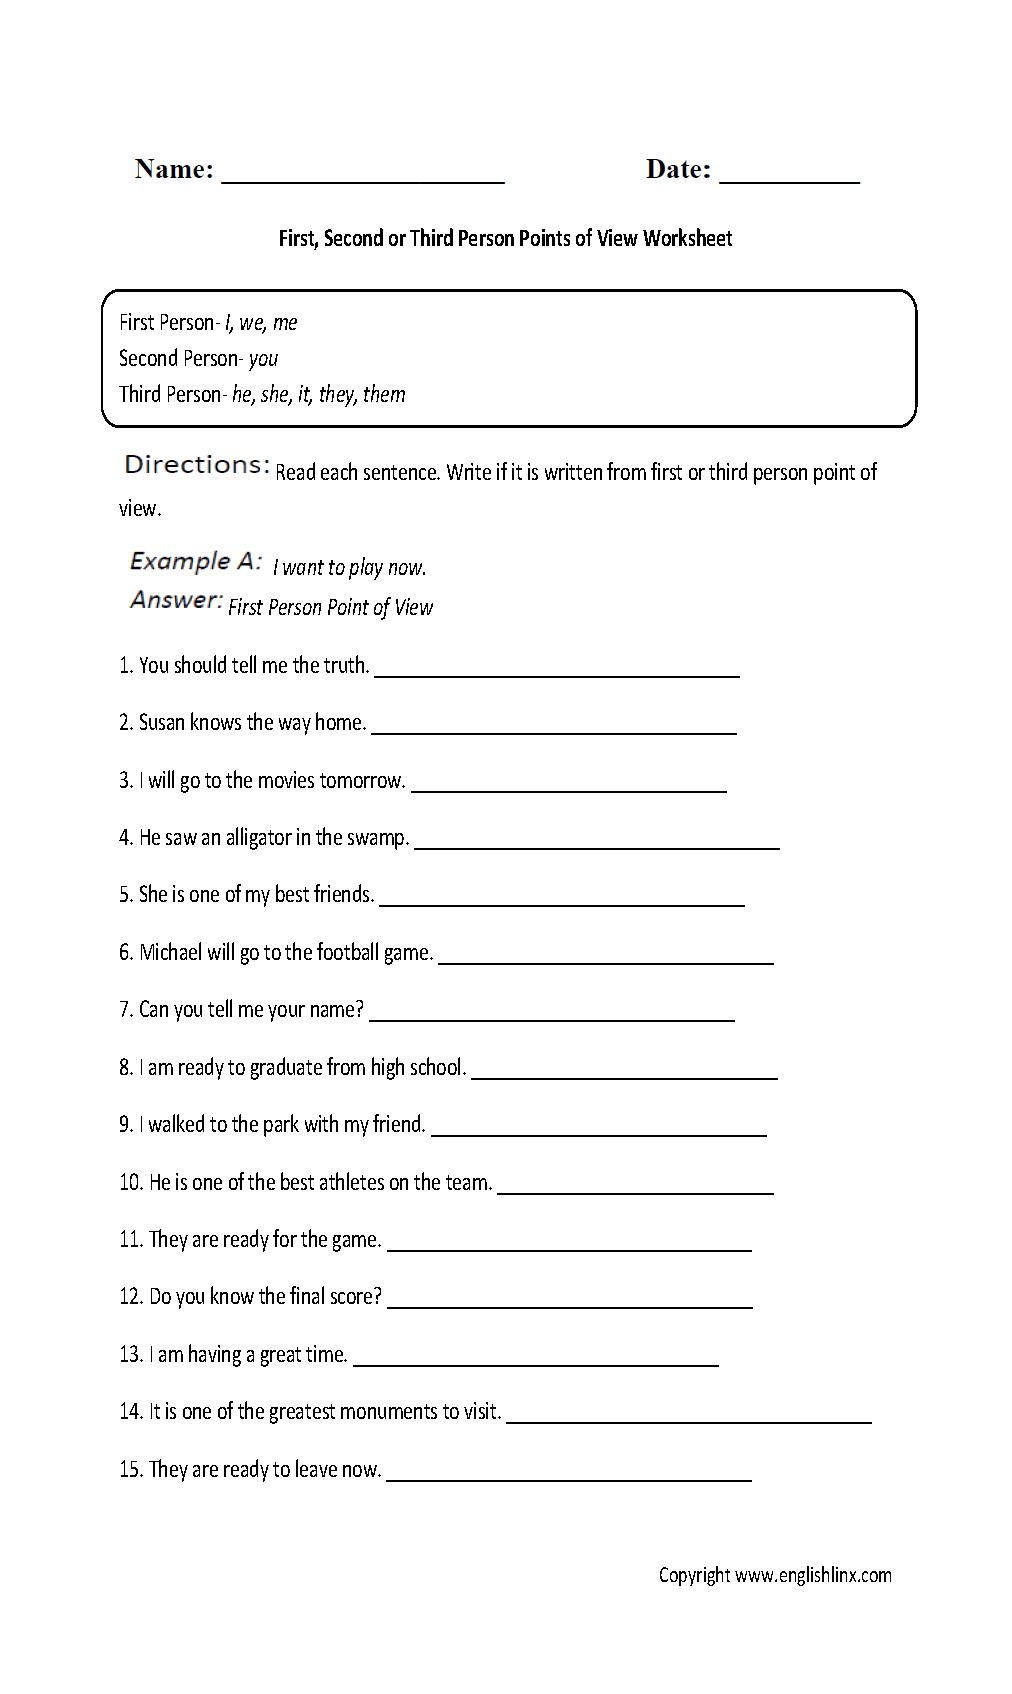 Weirdmailus  Stunning Englishlinxcom  Point Of View Worksheets With Entrancing Point Of View Worksheet With Beautiful Math Formulas Worksheet Also Handwriting Worksheets Free Printable In Addition Multiplication Timed Tests Worksheets And Second Grade Noun Worksheets As Well As Practice Writing Worksheets For Kindergarten Additionally Free R Controlled Vowel Worksheets From Englishlinxcom With Weirdmailus  Entrancing Englishlinxcom  Point Of View Worksheets With Beautiful Point Of View Worksheet And Stunning Math Formulas Worksheet Also Handwriting Worksheets Free Printable In Addition Multiplication Timed Tests Worksheets From Englishlinxcom